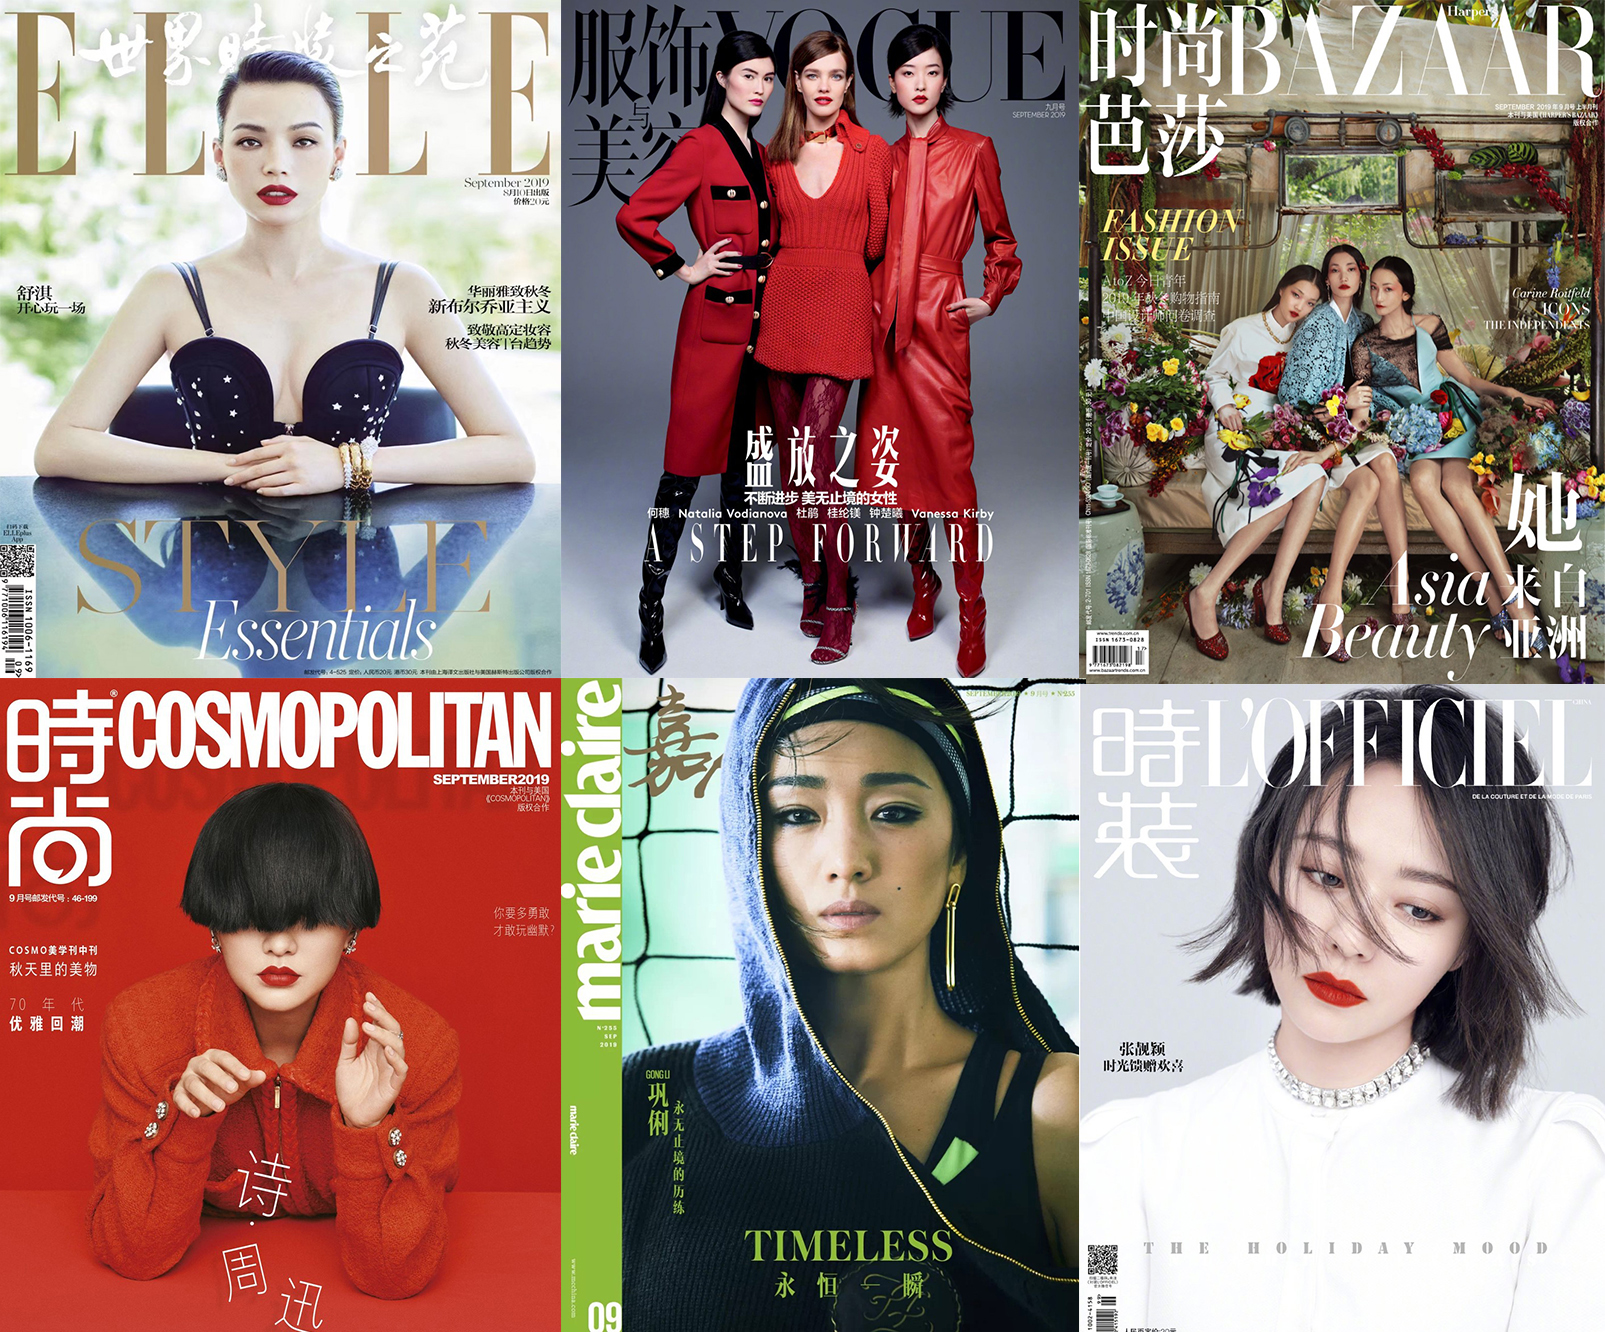 September issue covers of the Chinese edition of Elle, Vogue, Harper's Bazaar, Cosmopolitan, Marie Claire and L'officiel.